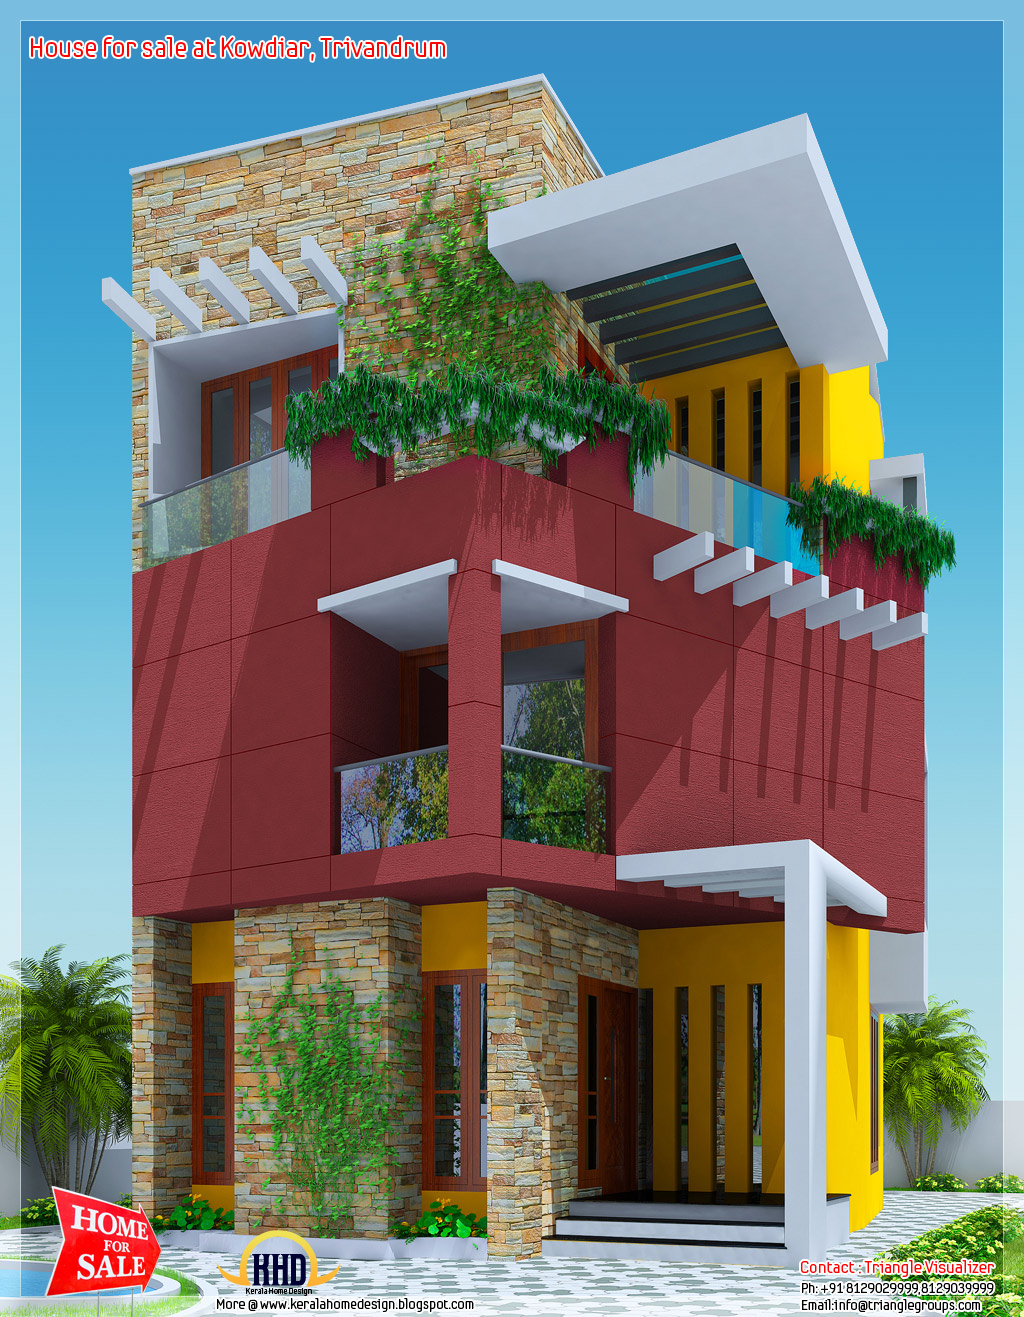 3 floor house for sale at kowdiar trivandrum kerala for Second floor house plans indian pattern